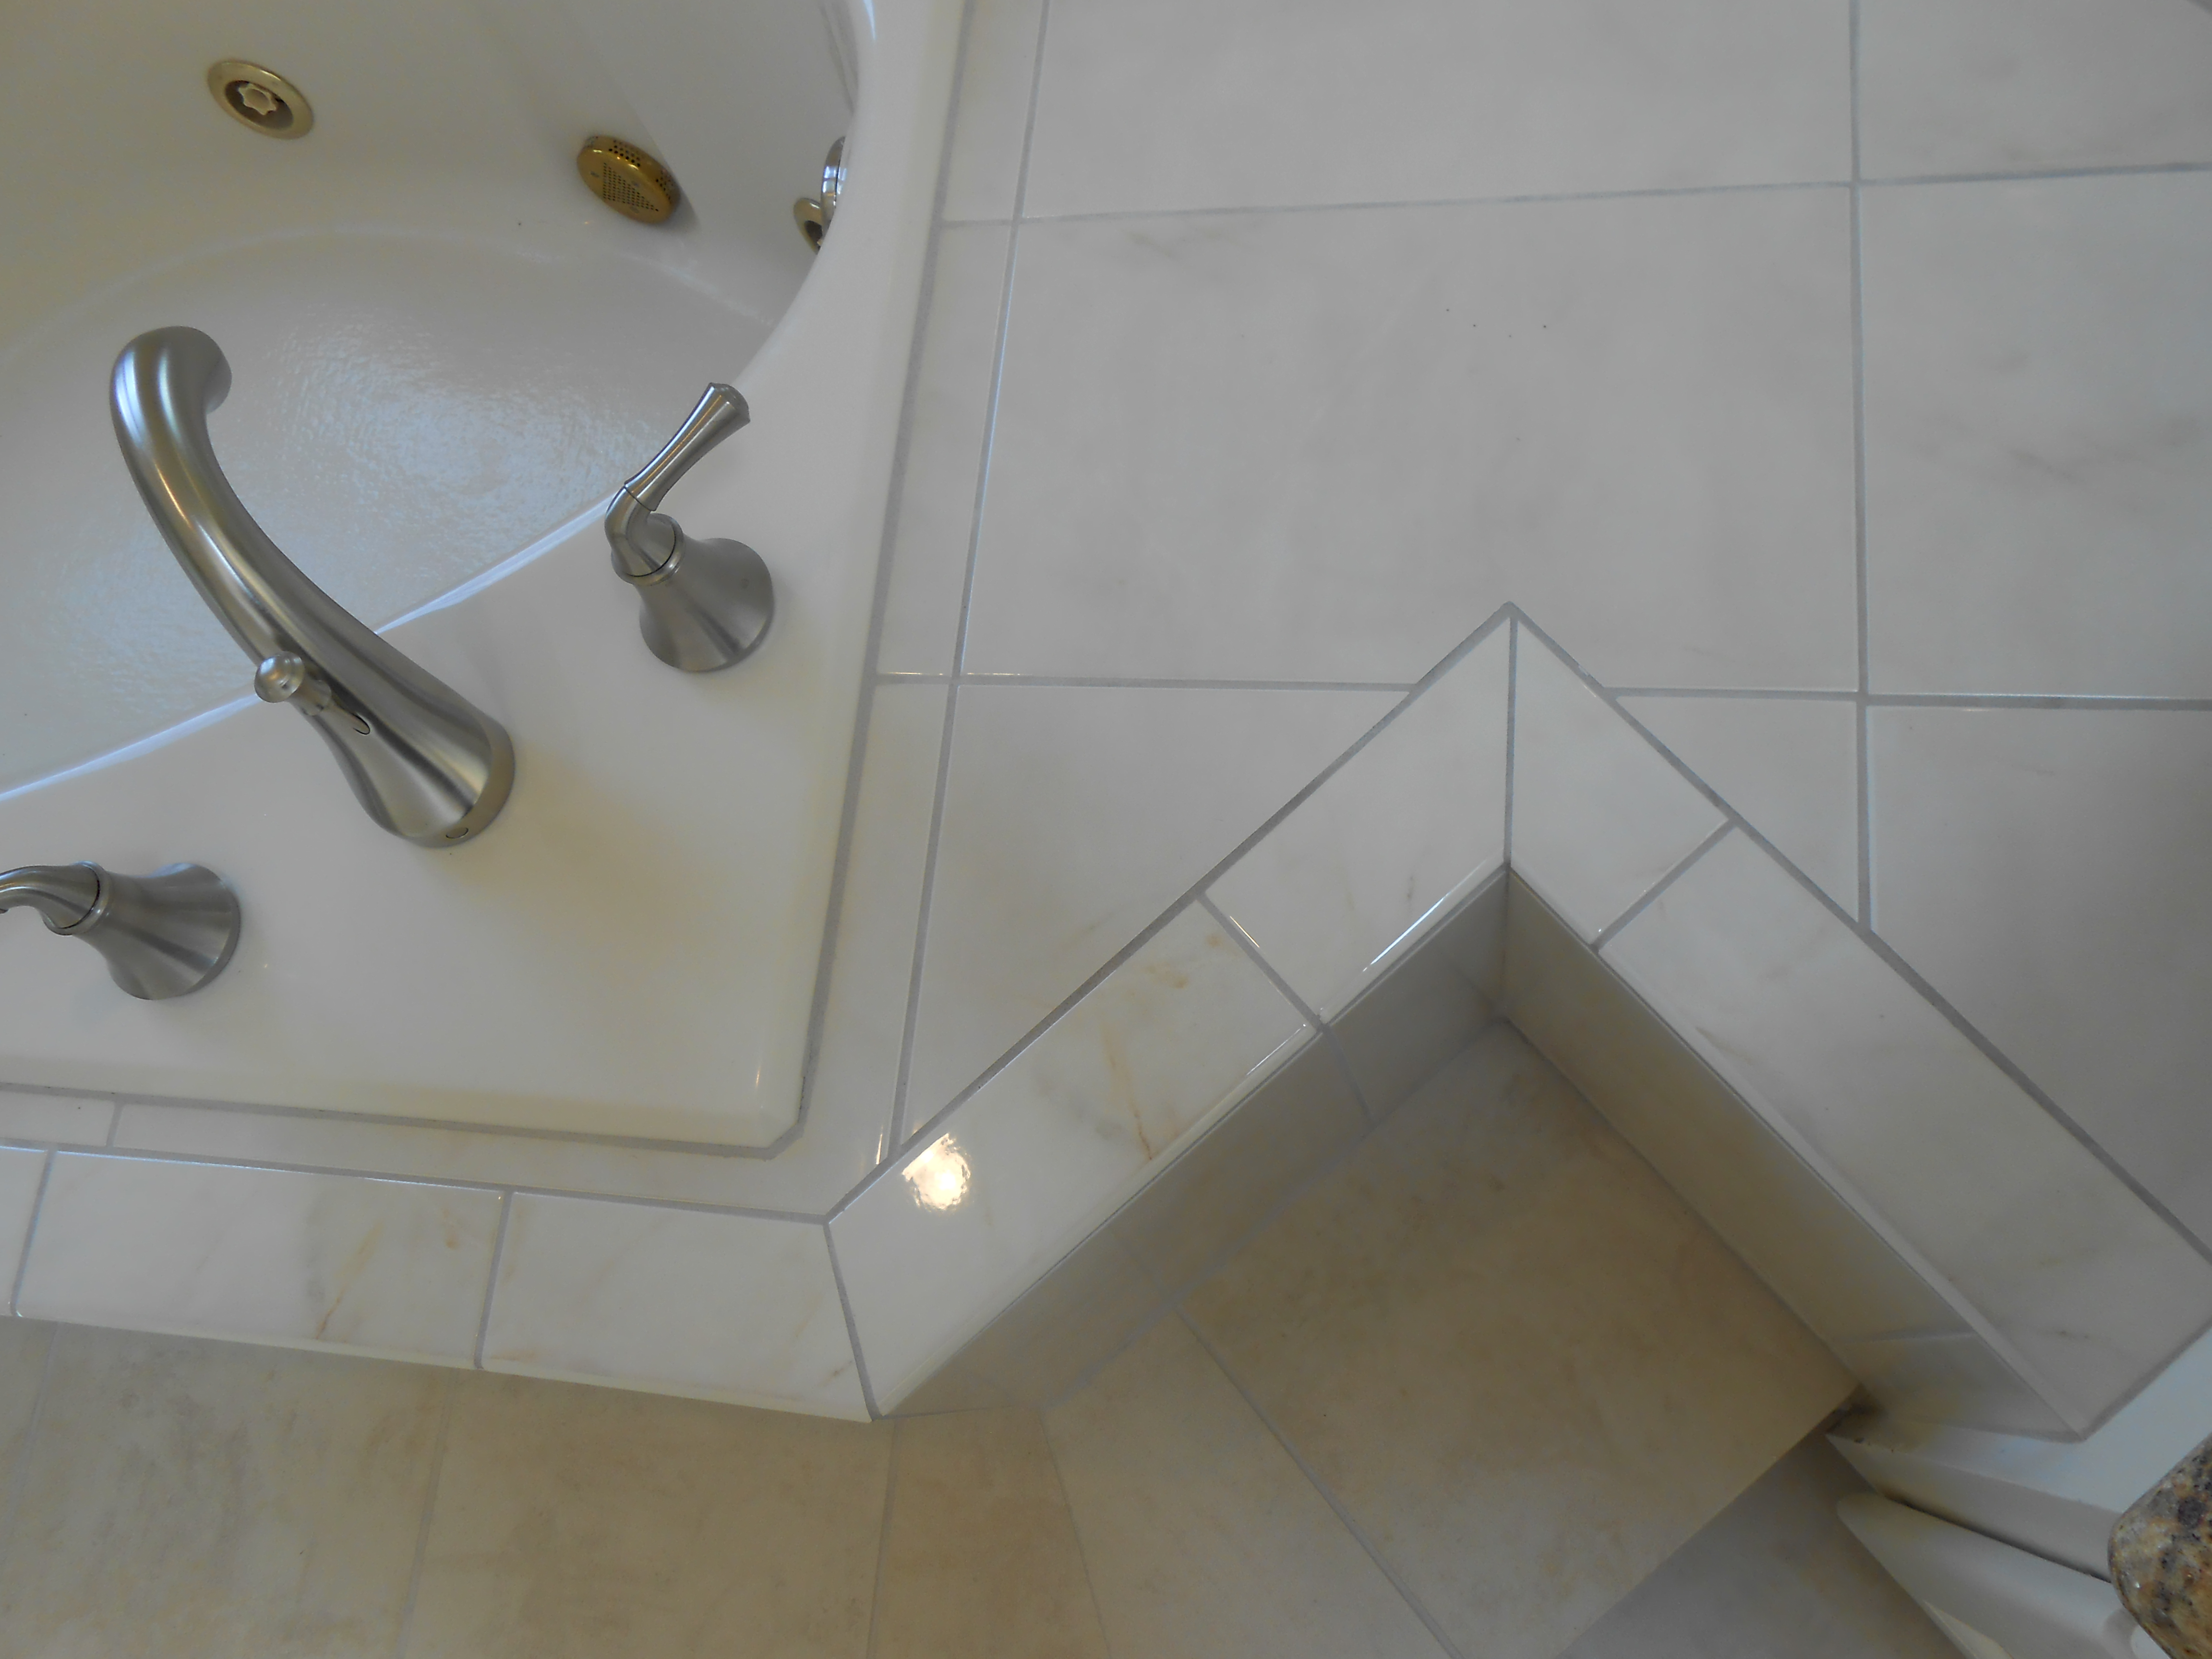 brushed nickel tub fixtures